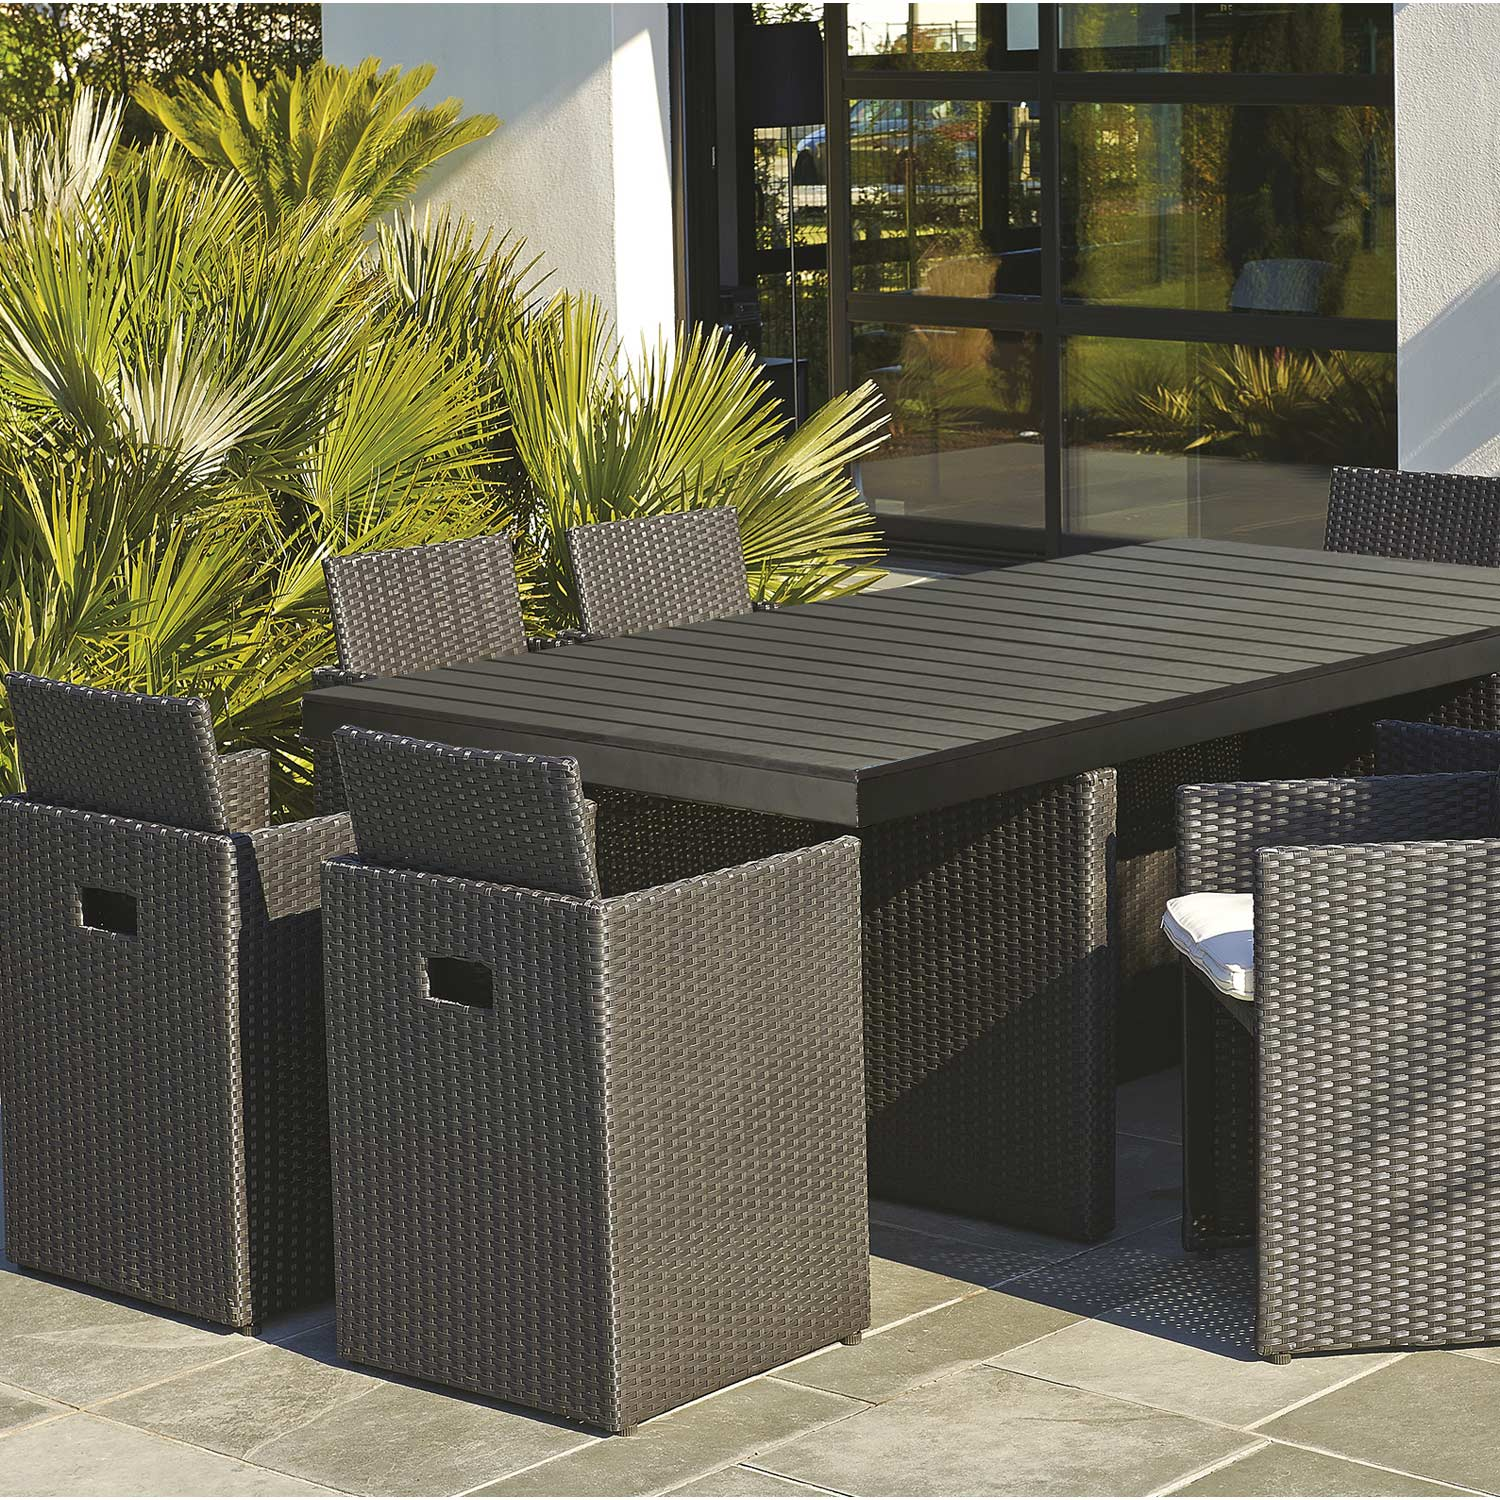 Salon de jardin encastrable r sine tress e noir 1 table - Salon de jardin en resine leroy merlin ...